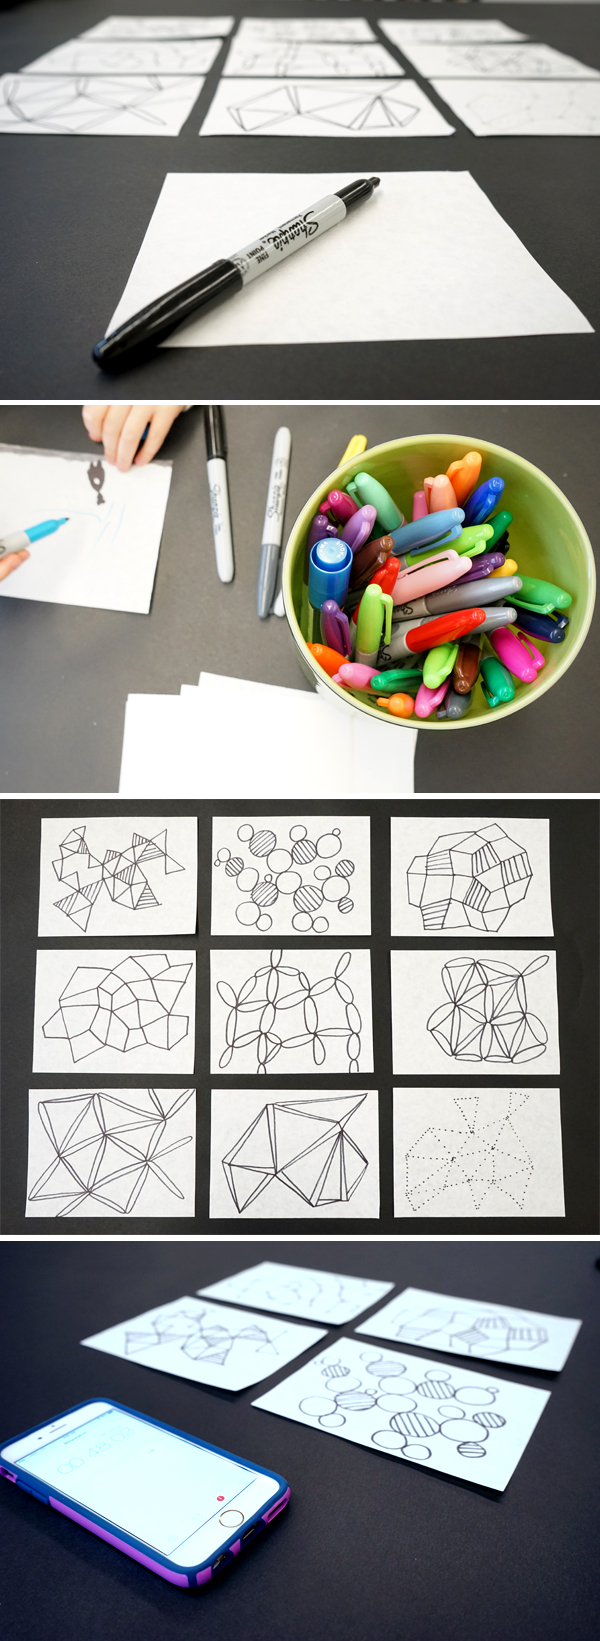 Drawing Ideas: Make one minute drawings to spark creativity